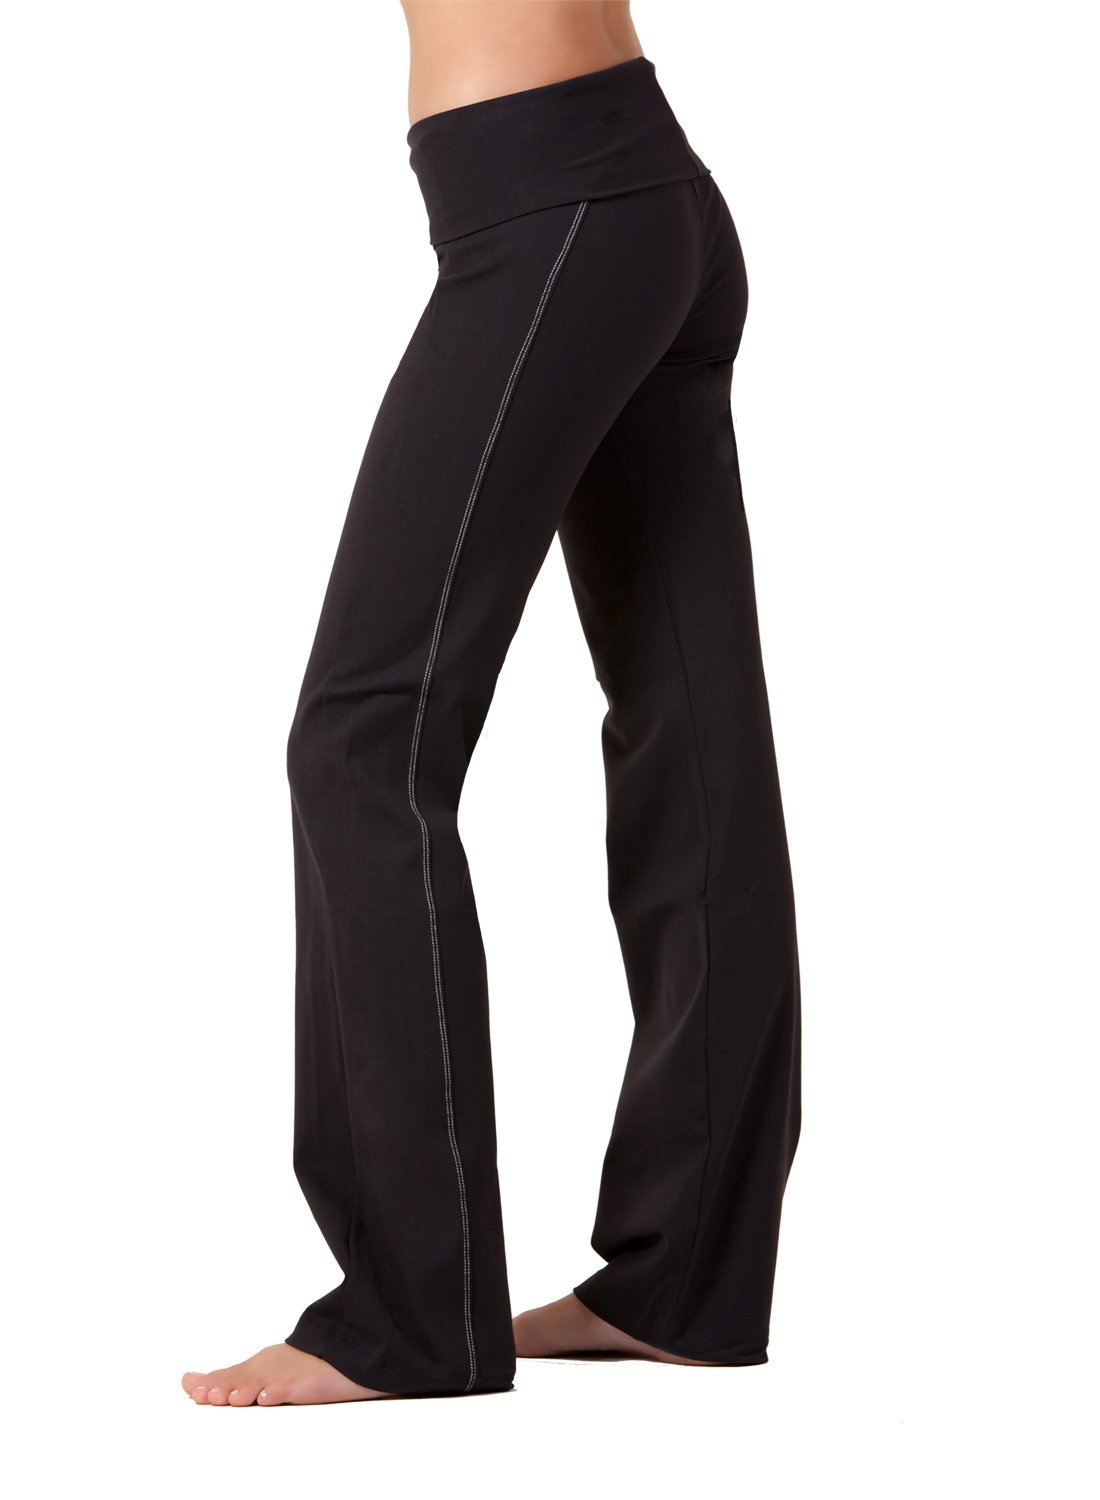 Top-stitched Yoga Pants by Fit Couture, M-31'', Black